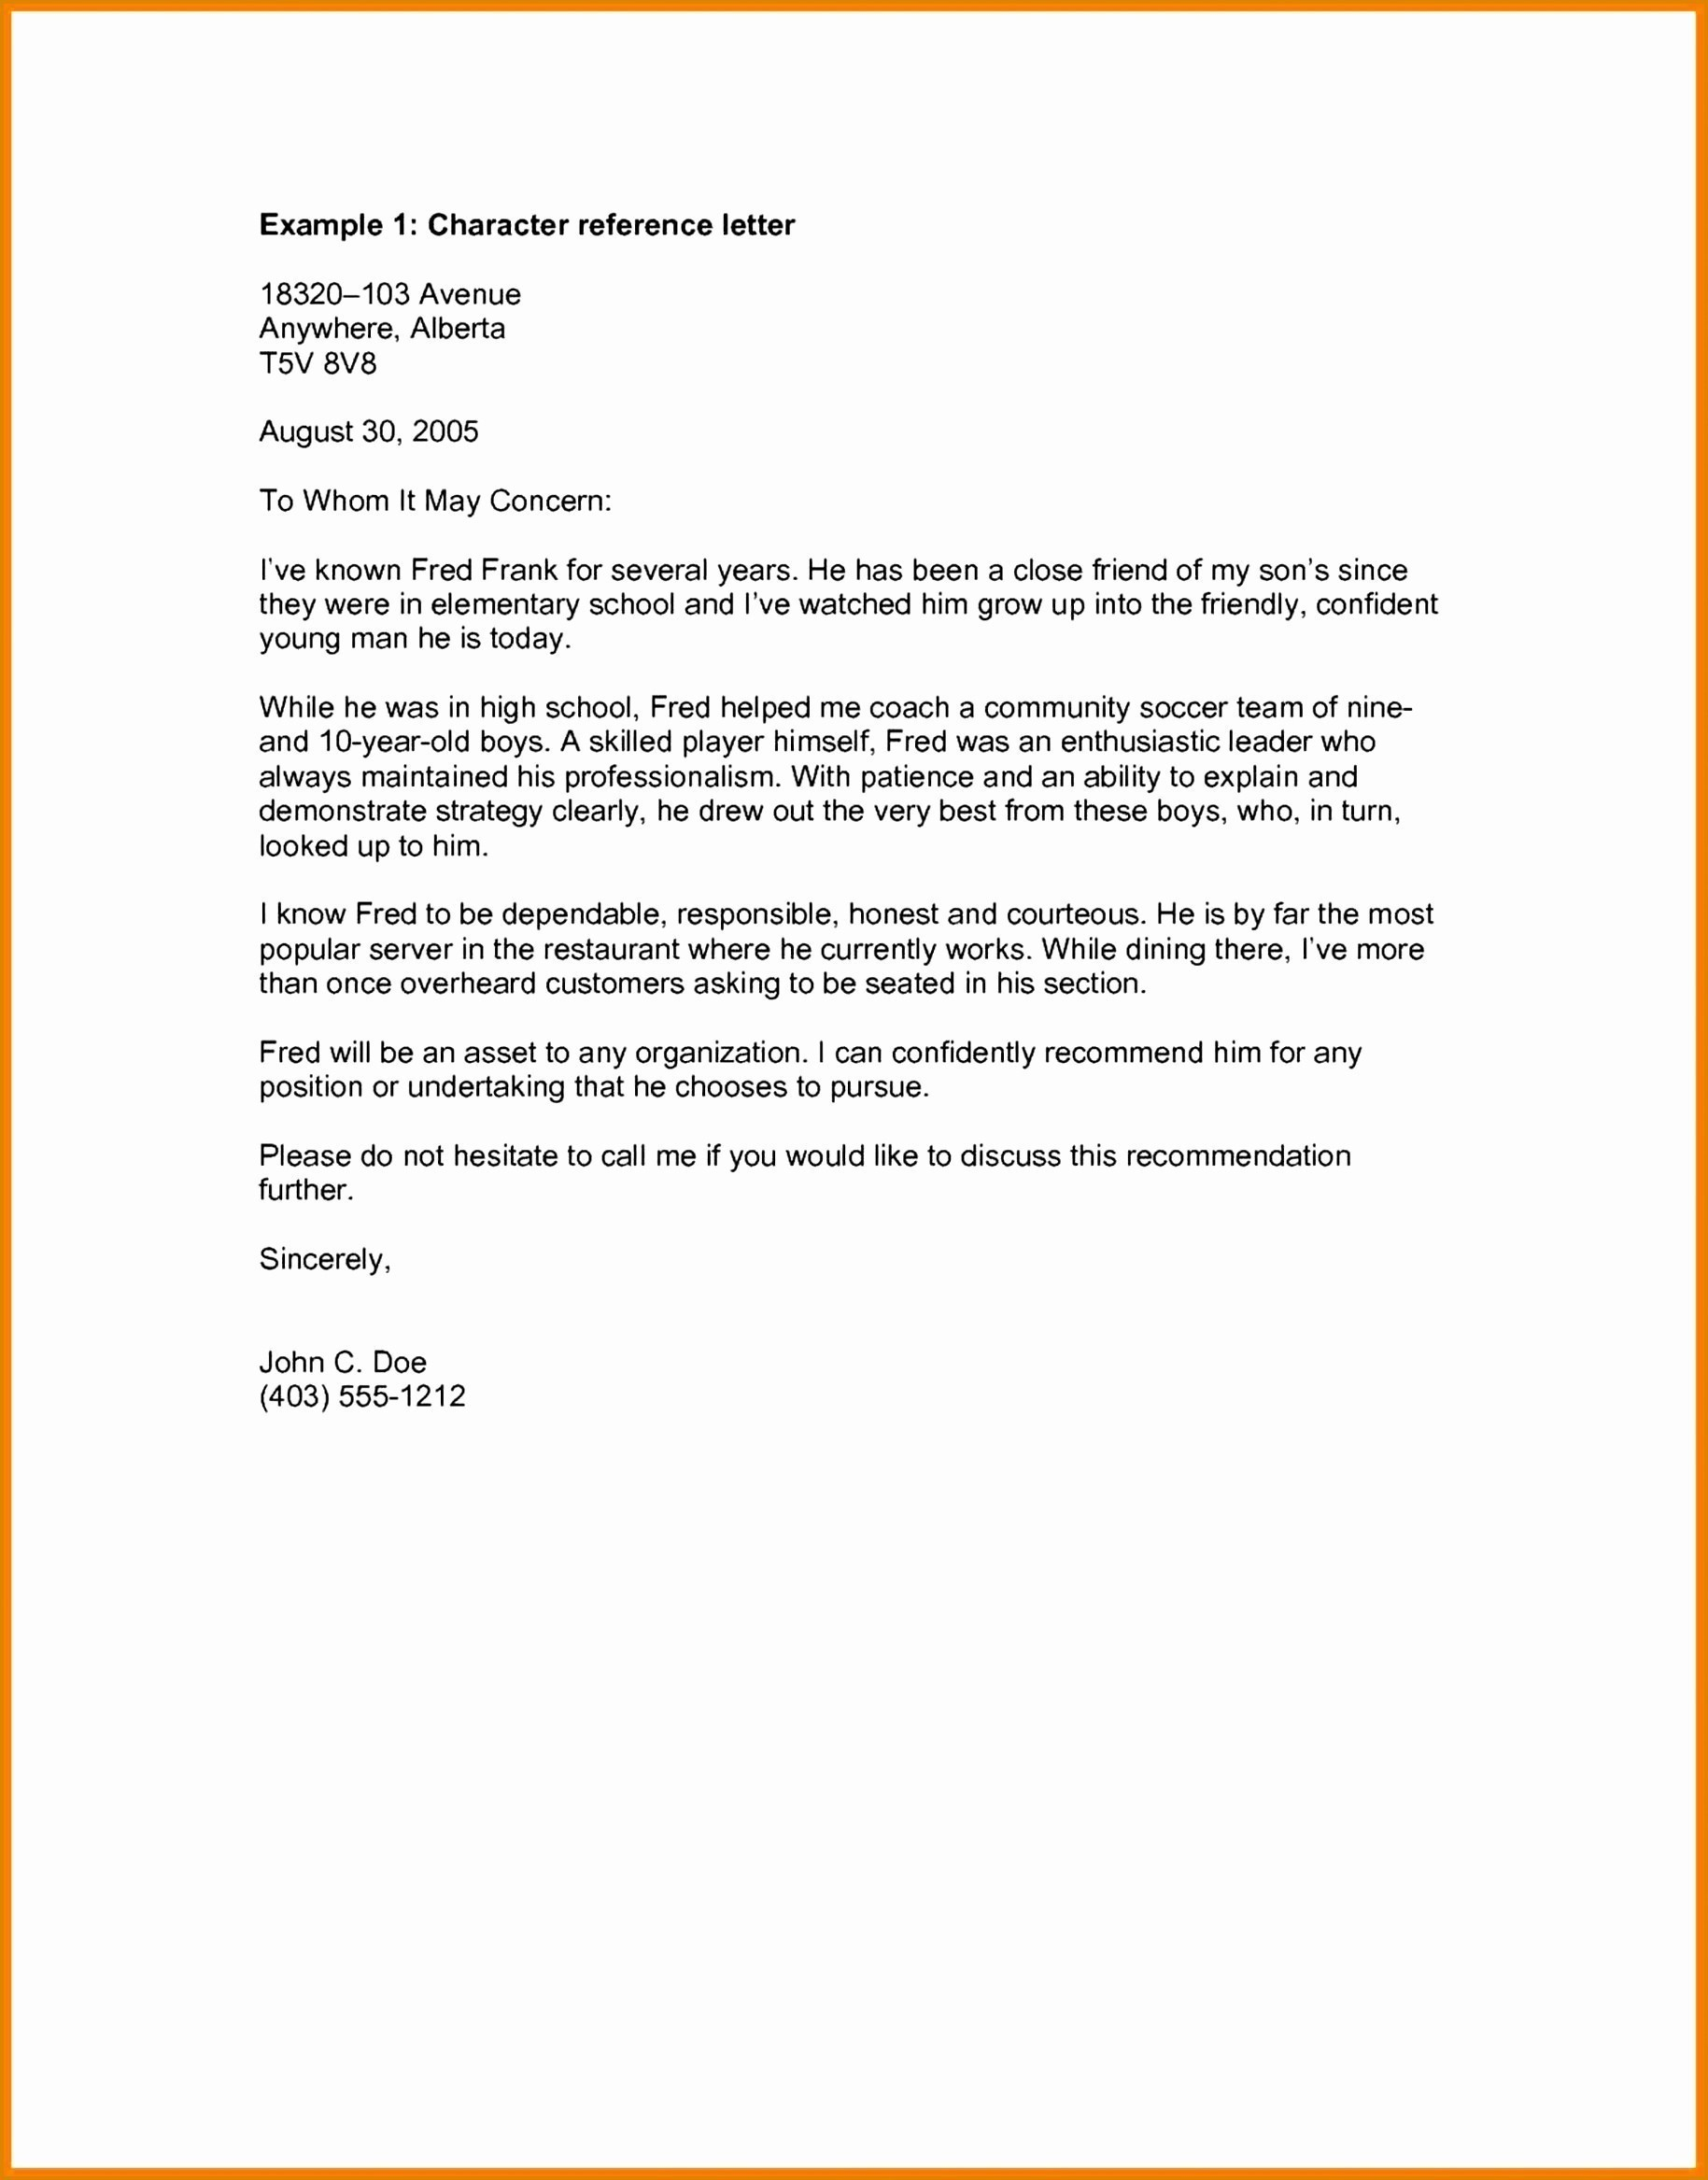 Landlord Reference Letter Template - Plaint Letter Template Refund Fresh Template References Letter